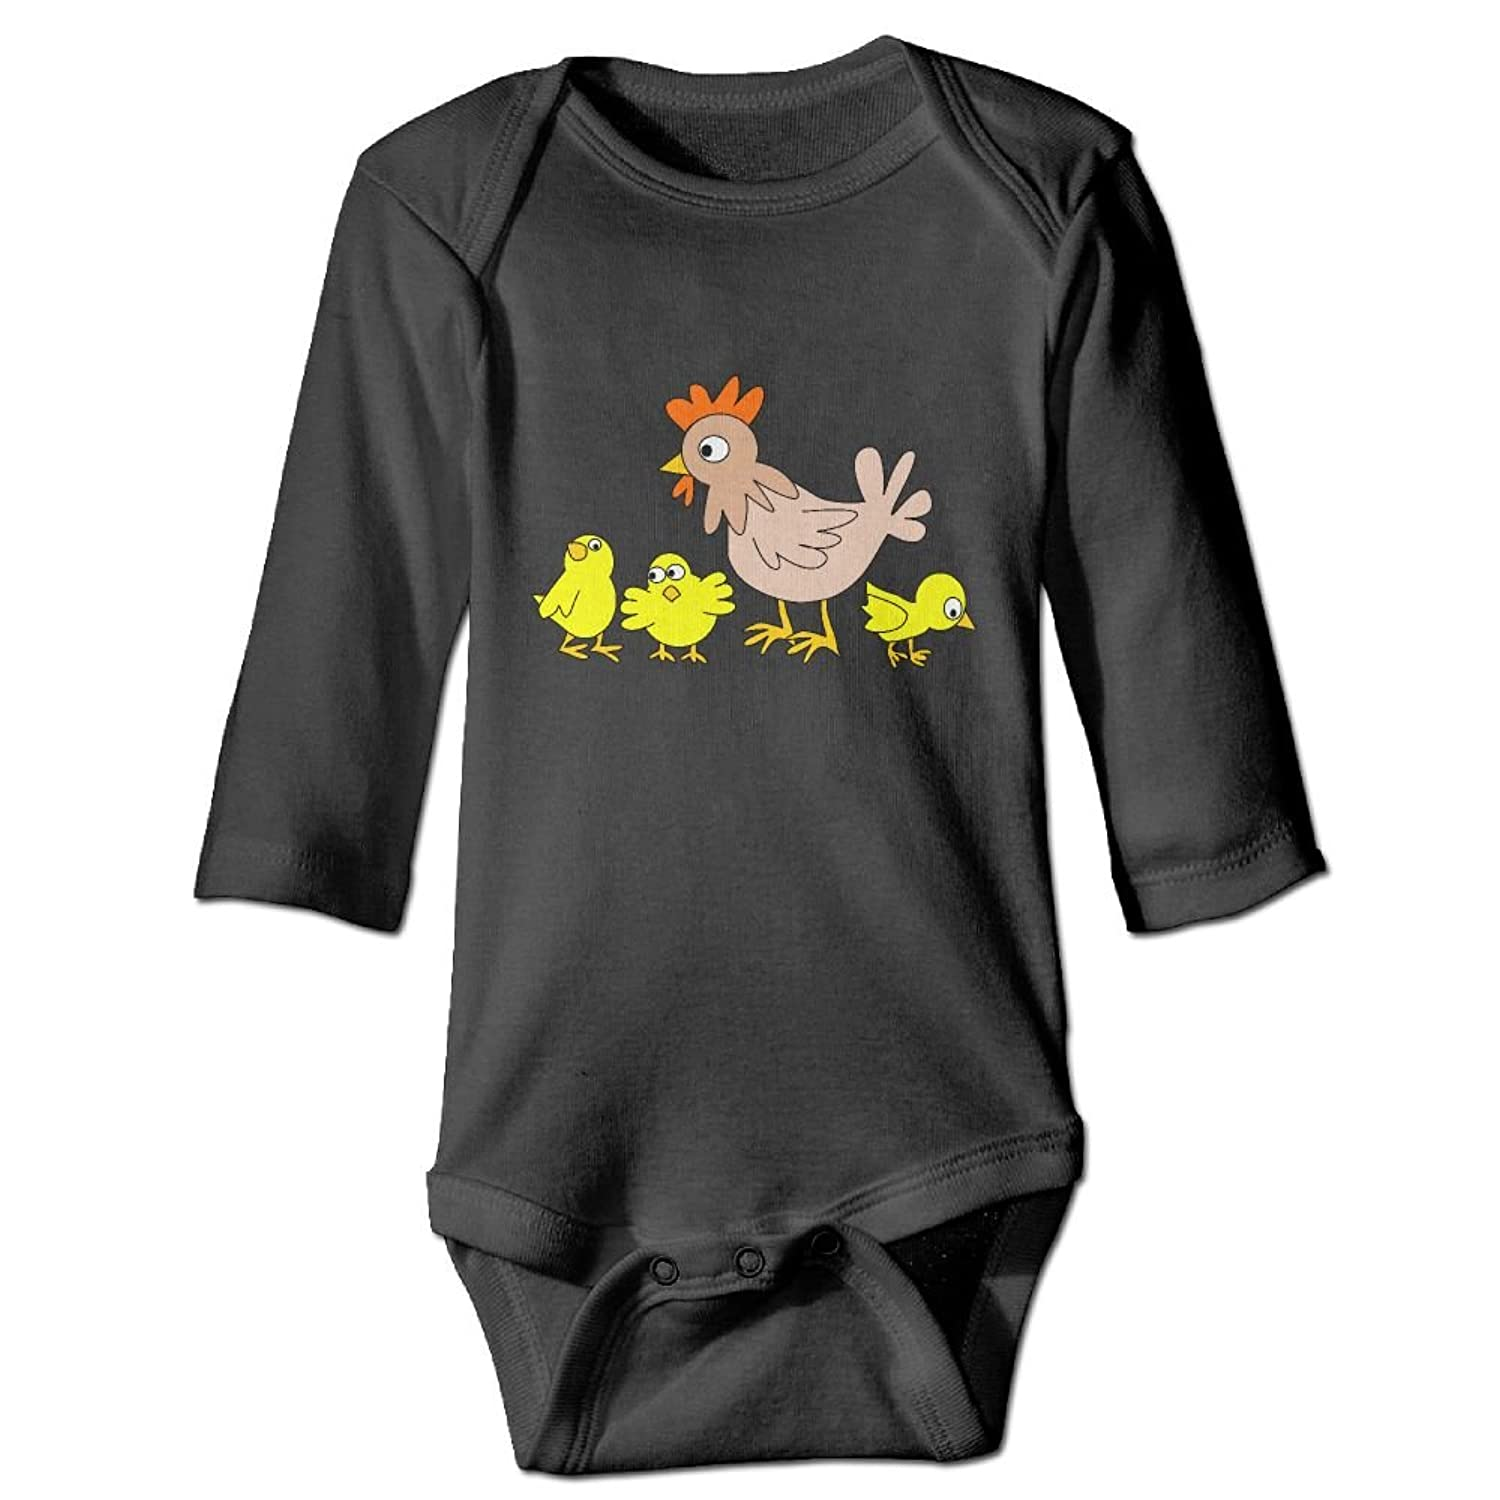 2132f01d81c2 GooReady Poultrys Chickens Long Sleeve Romper Play Suit For 6-24 ...